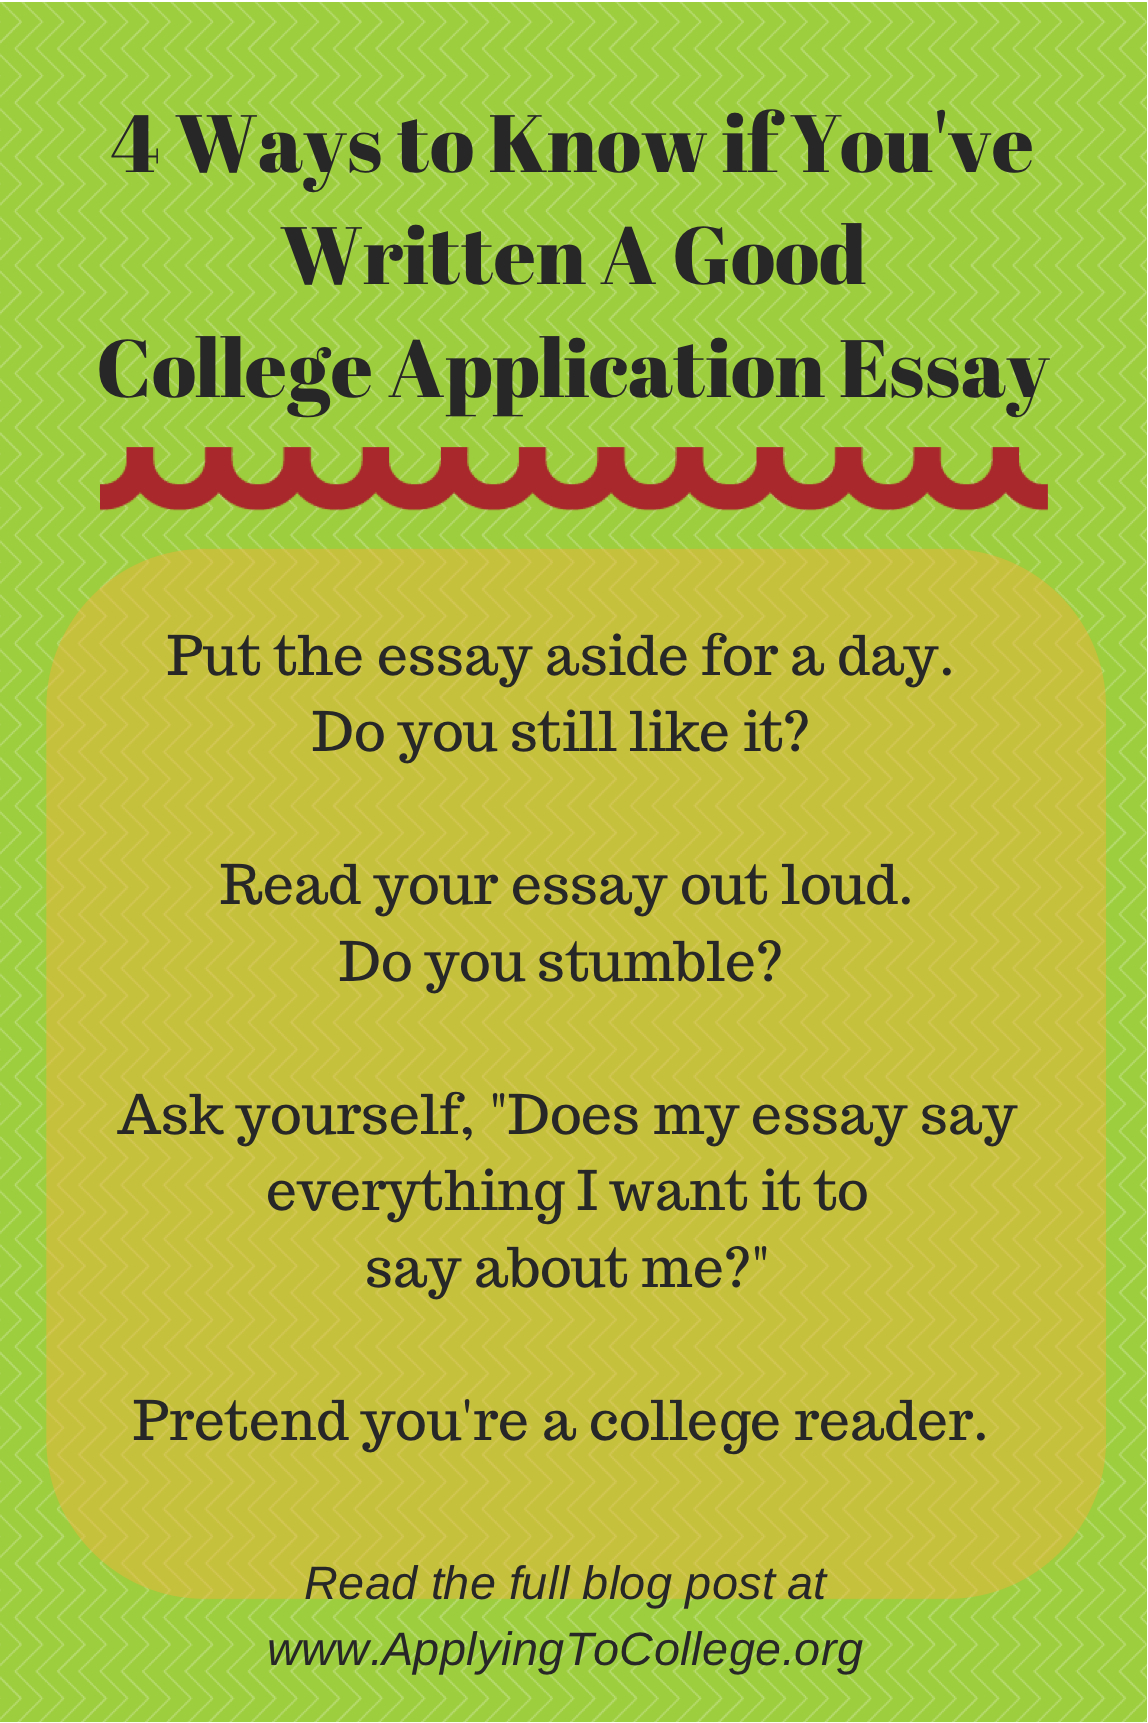 4 ways to know if you ve written a good college essay applying 4 ways to know if you ve written a good college application essay